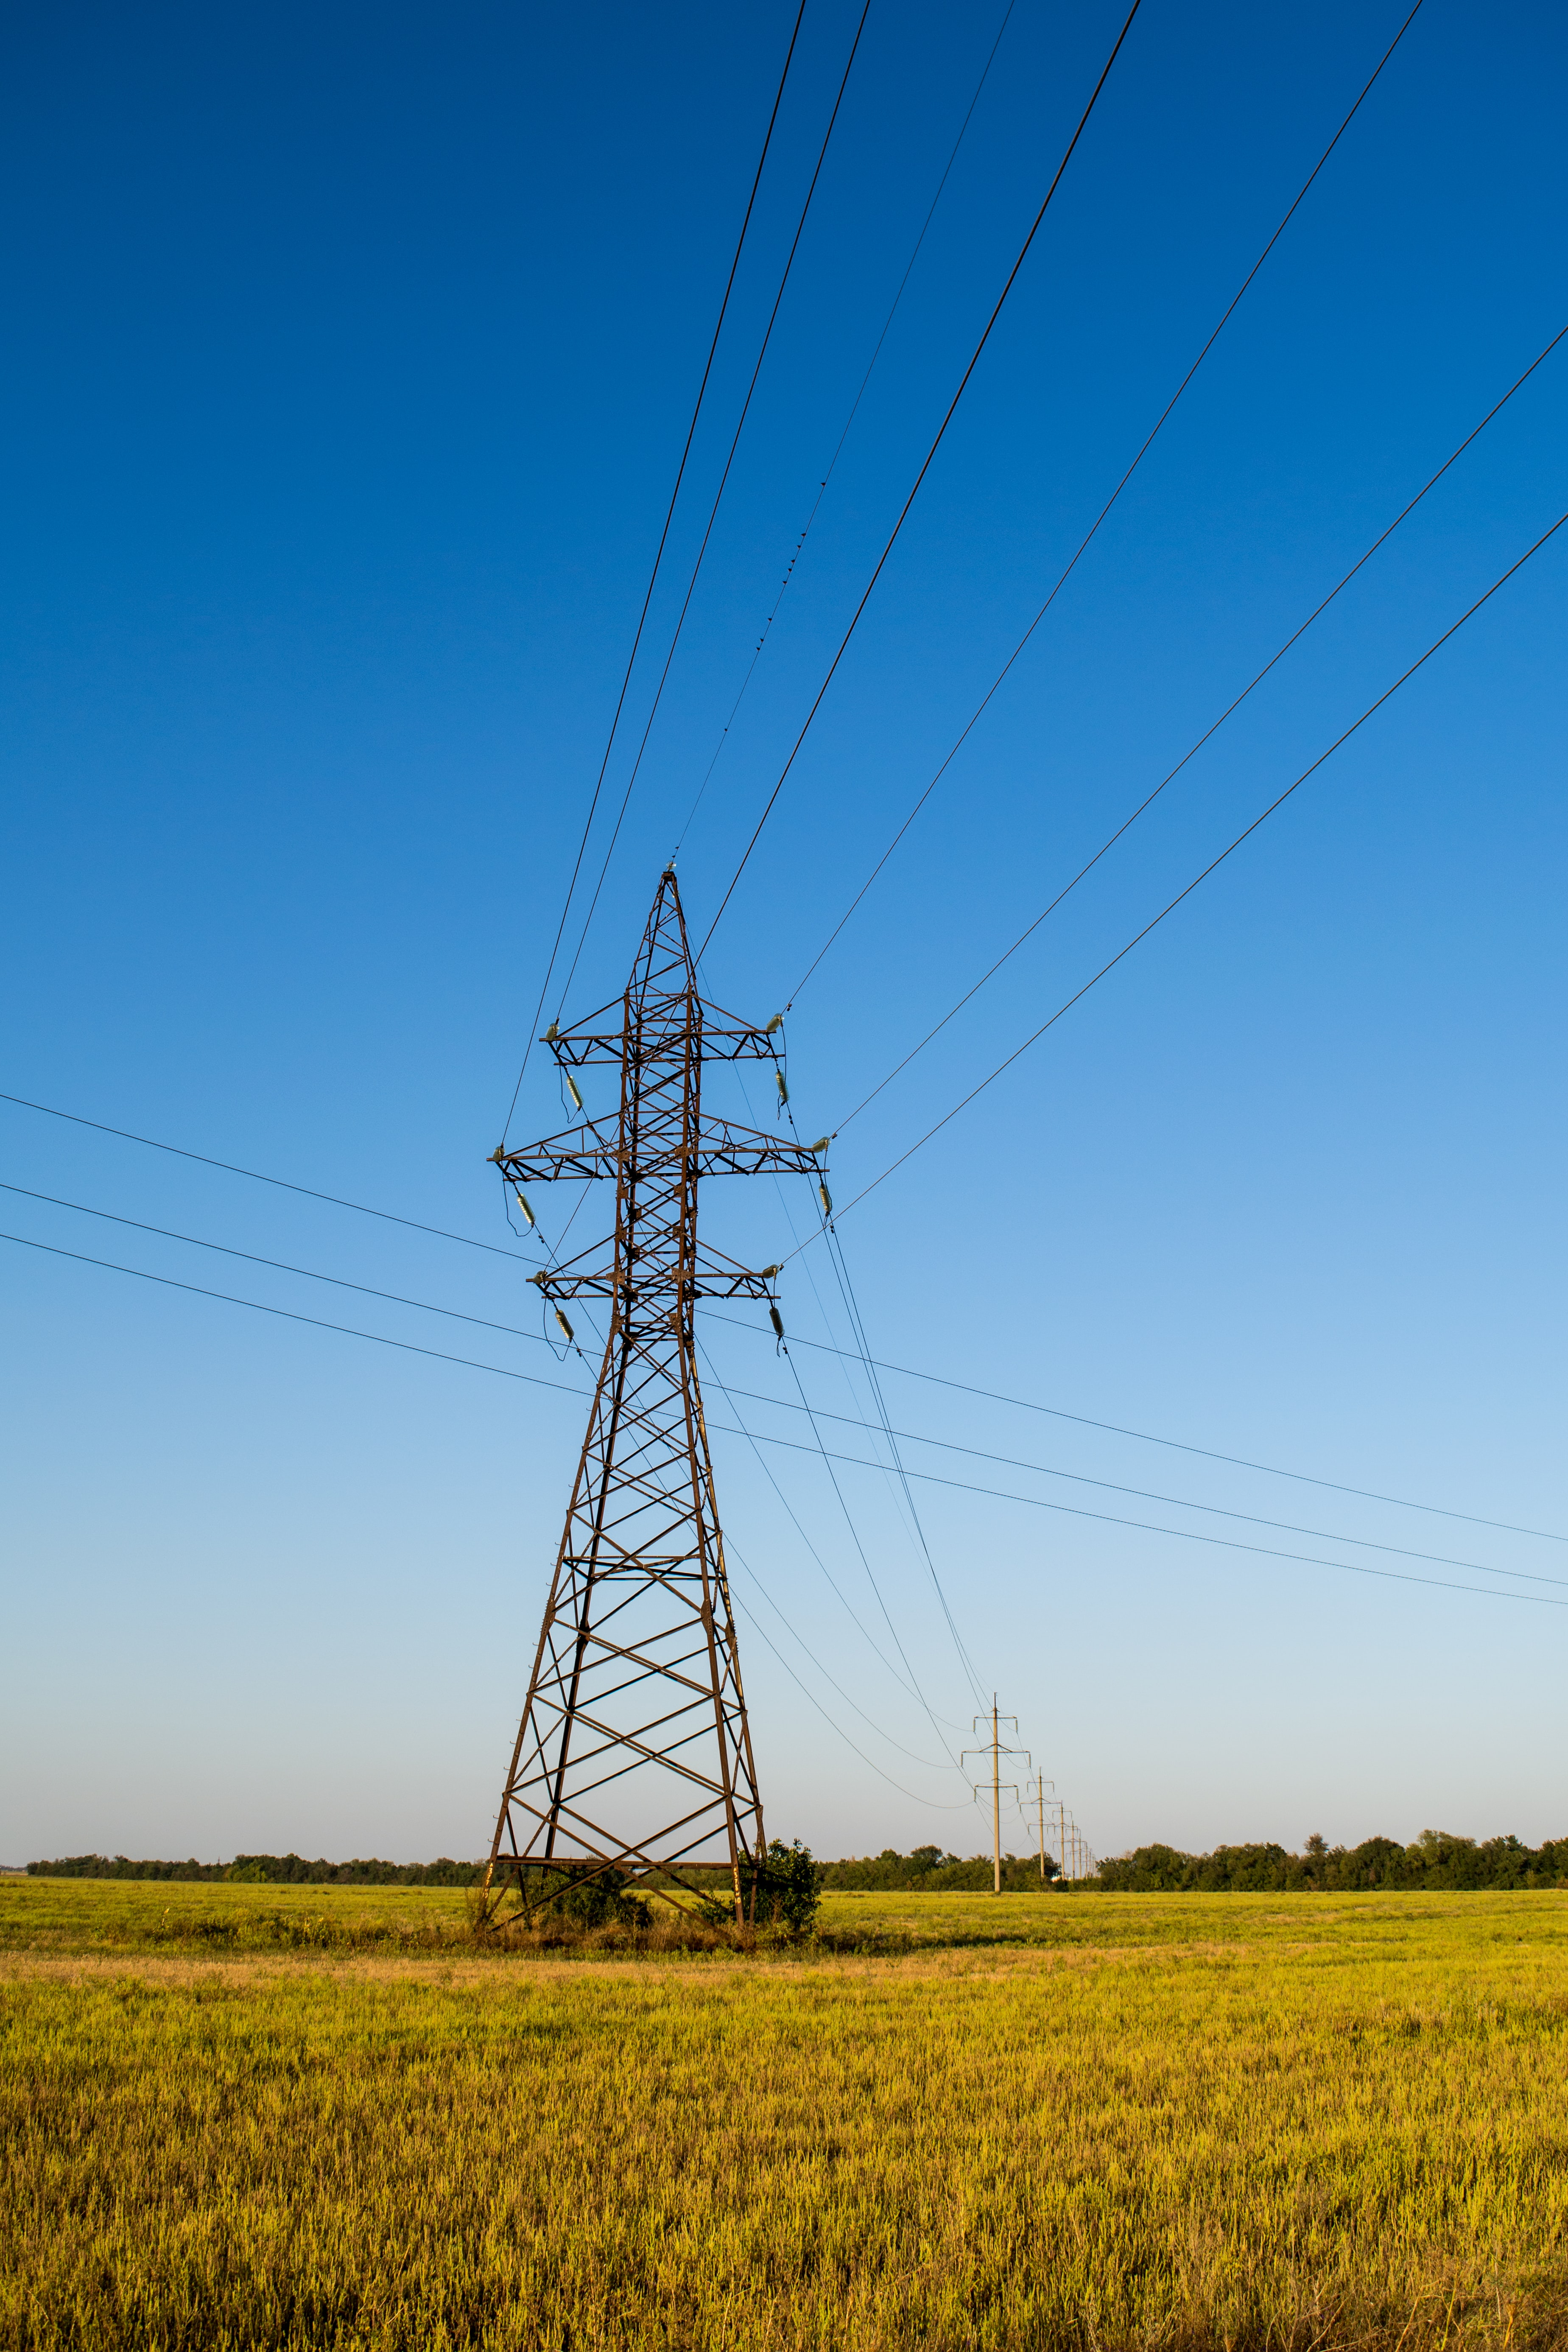 landscape photography of transmission tower